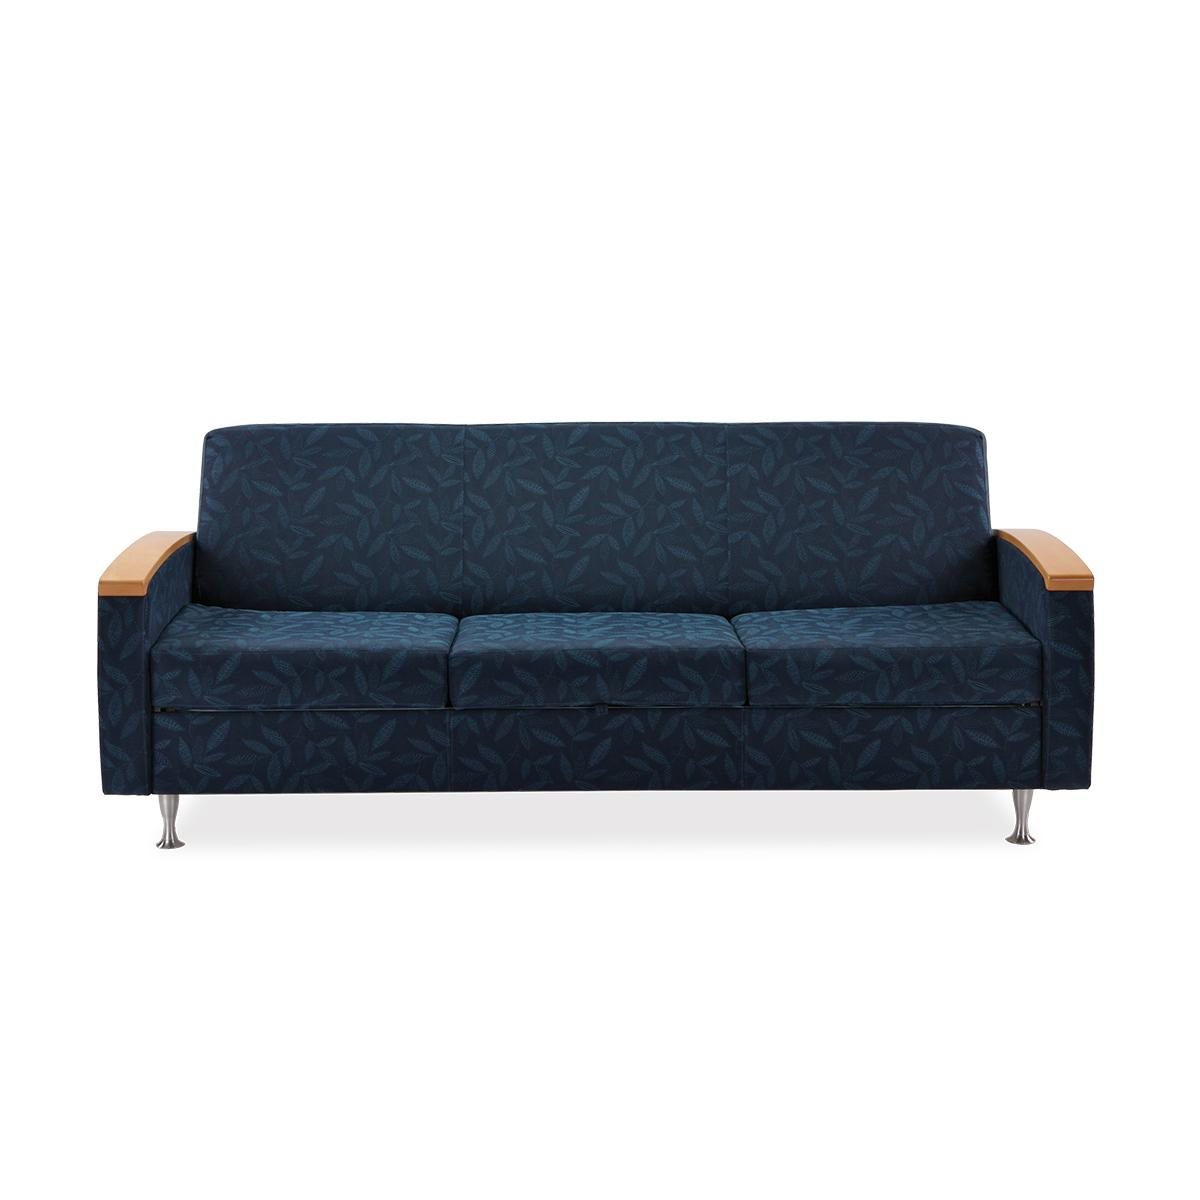 Art of Care Day Bed Sleeper, navy, front facing